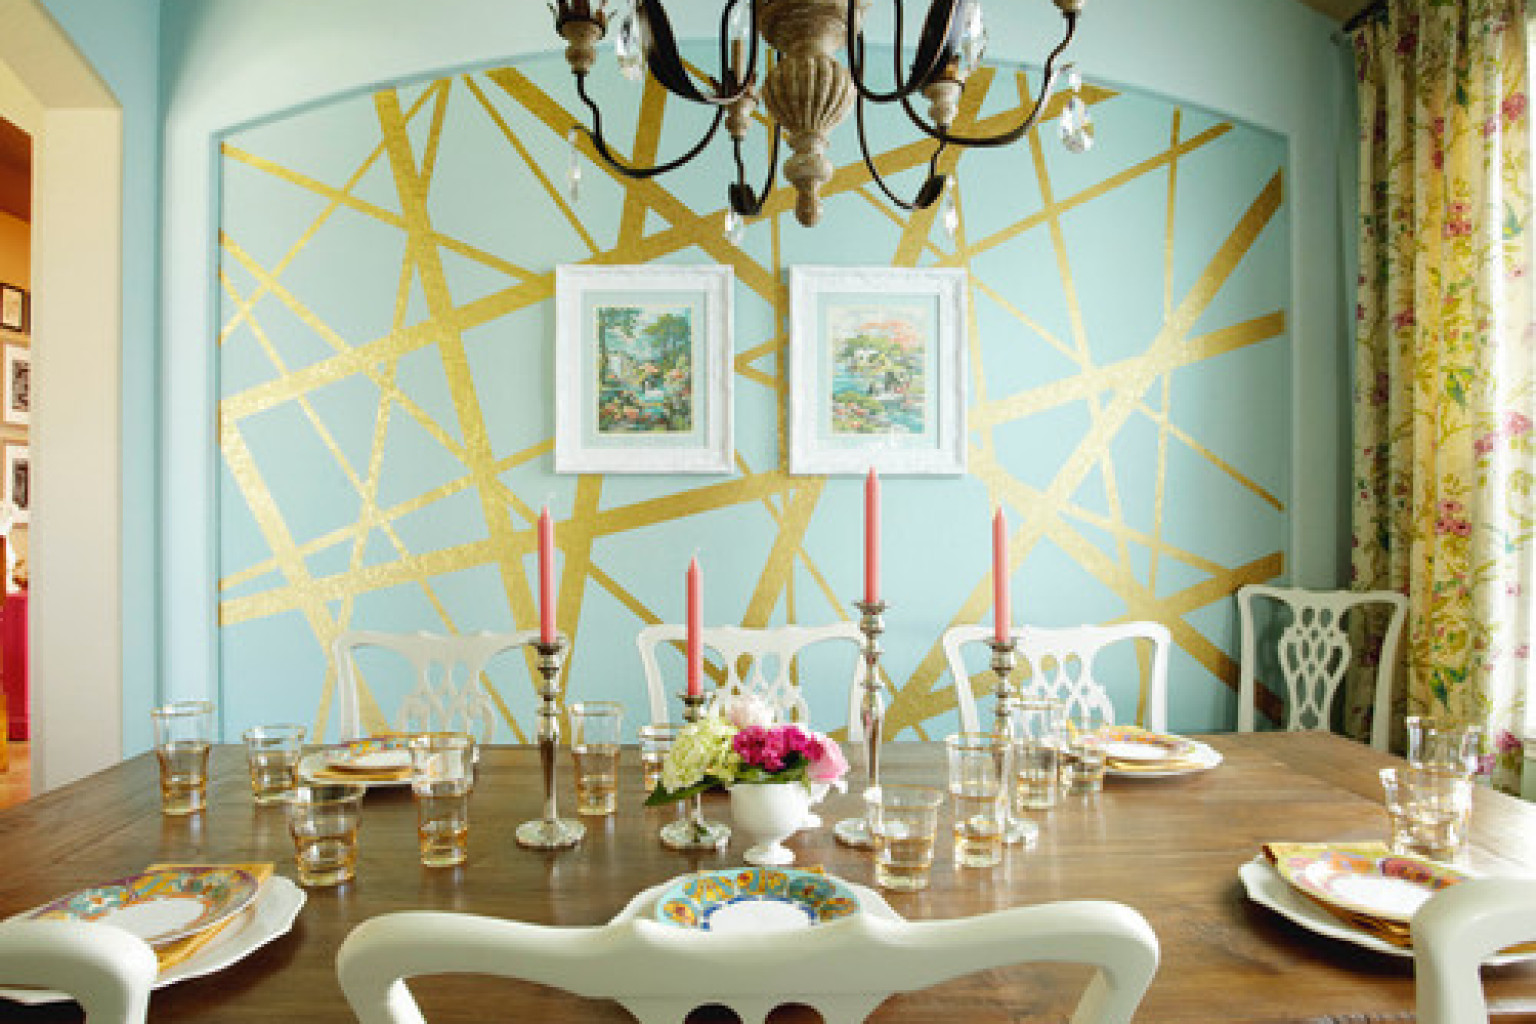 Interior Wall Painting Designs crafty finds for your inspiration no5 painting wallswall 8 Incredible Interior Paint Ideas From Real Homes That Turn A Wall Into A Masterpiece Photos Huffpost